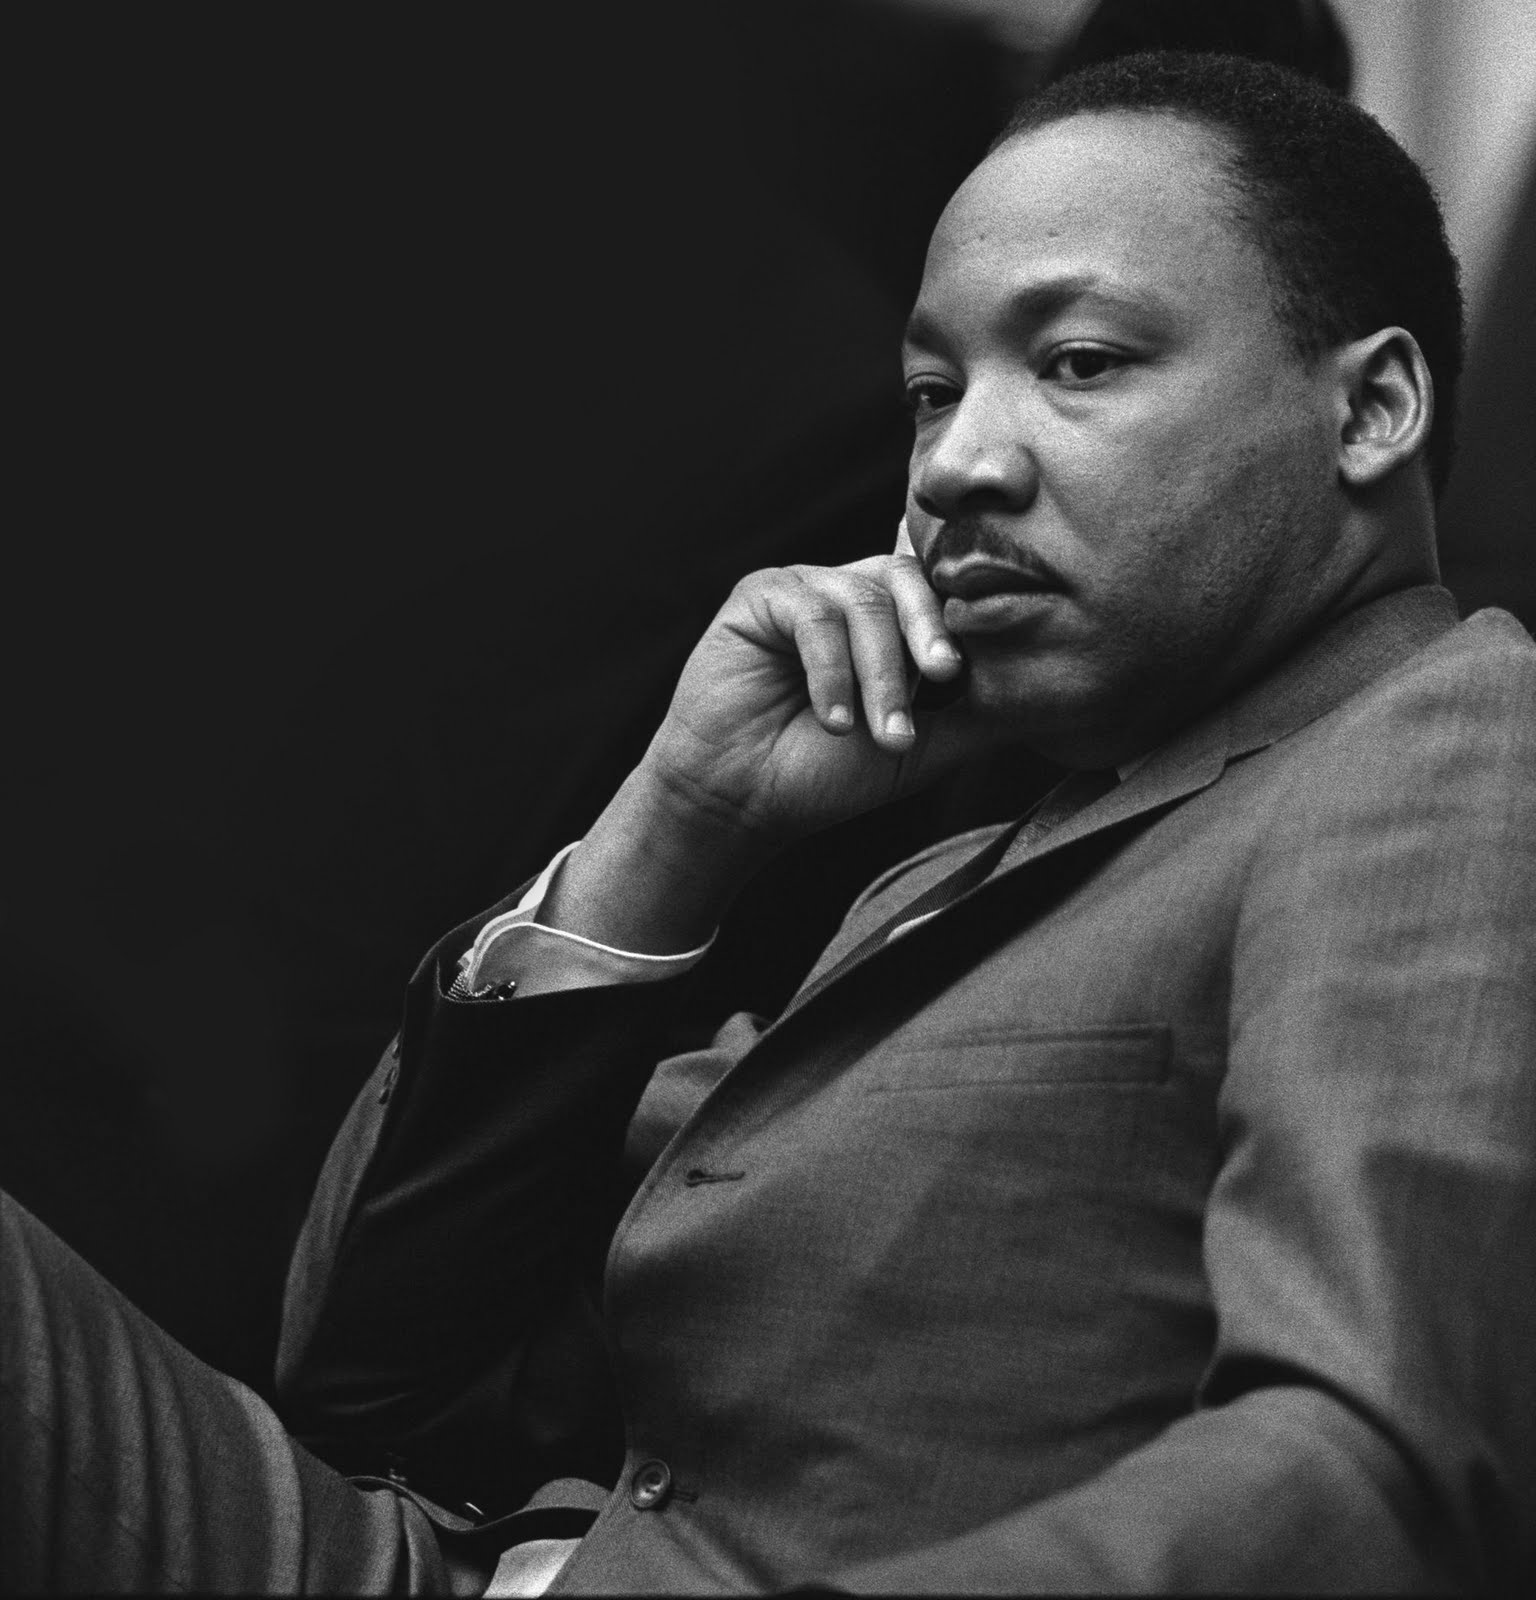 an analysis of the speech of dr martin luther king Dr martin luther king jr delivered what is commonly known as the i have a dream speech on aug 28, 1963, at the lincoln memorial in washington, dc the speech, which was partly improvised by.